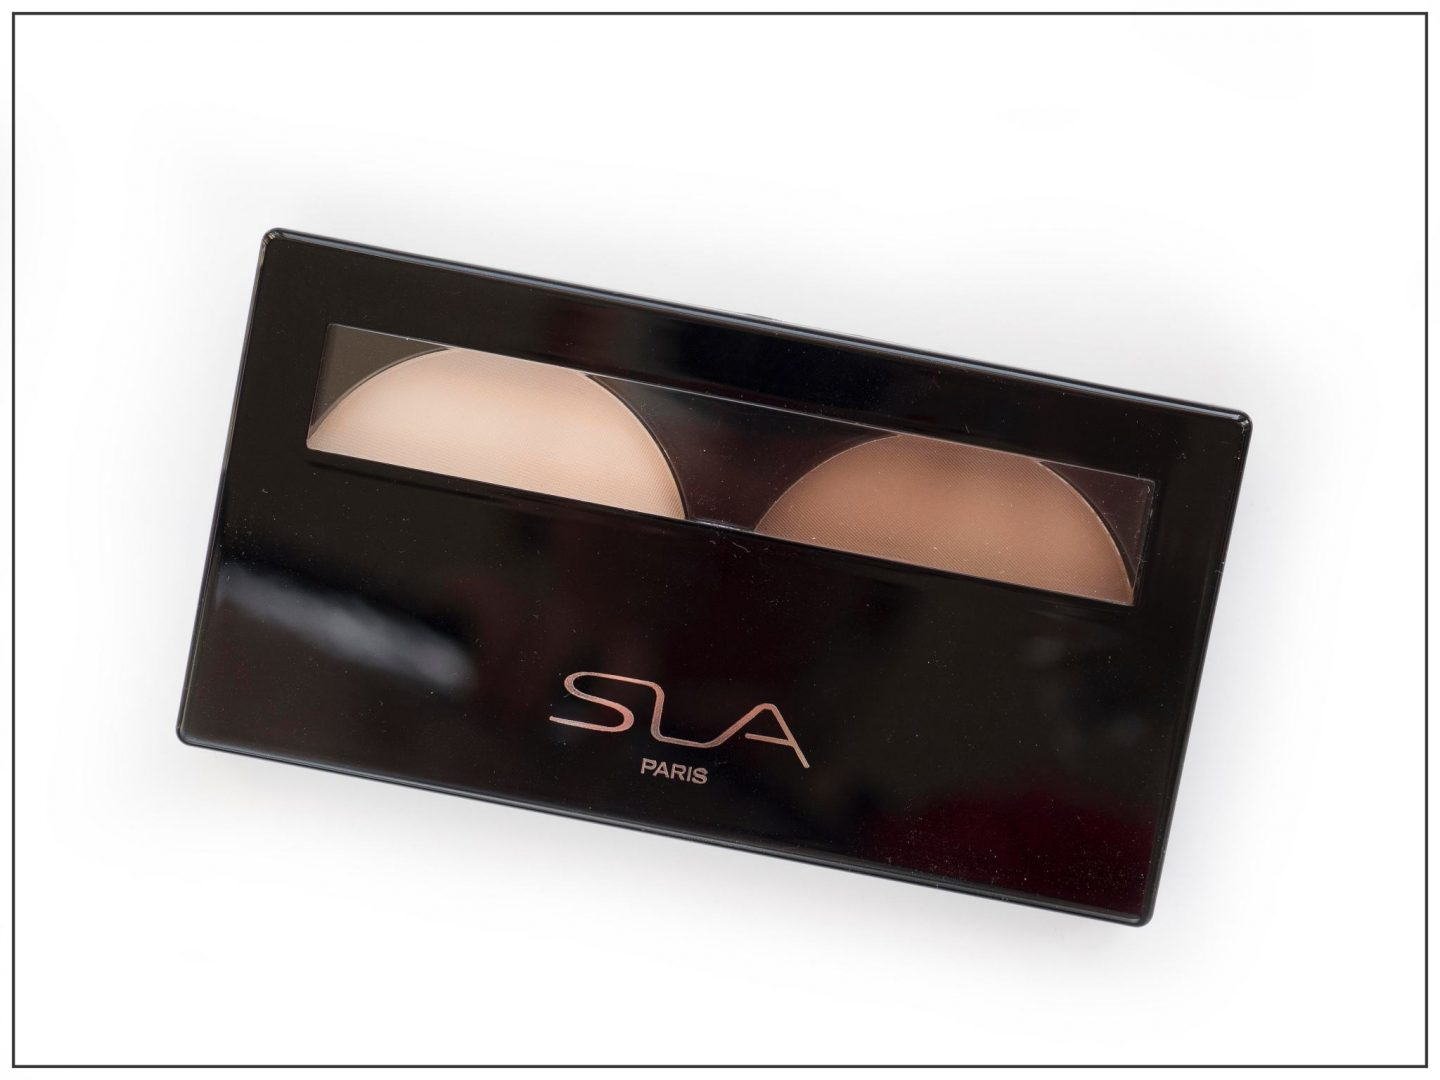 SLA Paris Shadow & Light Face Contouring Palette